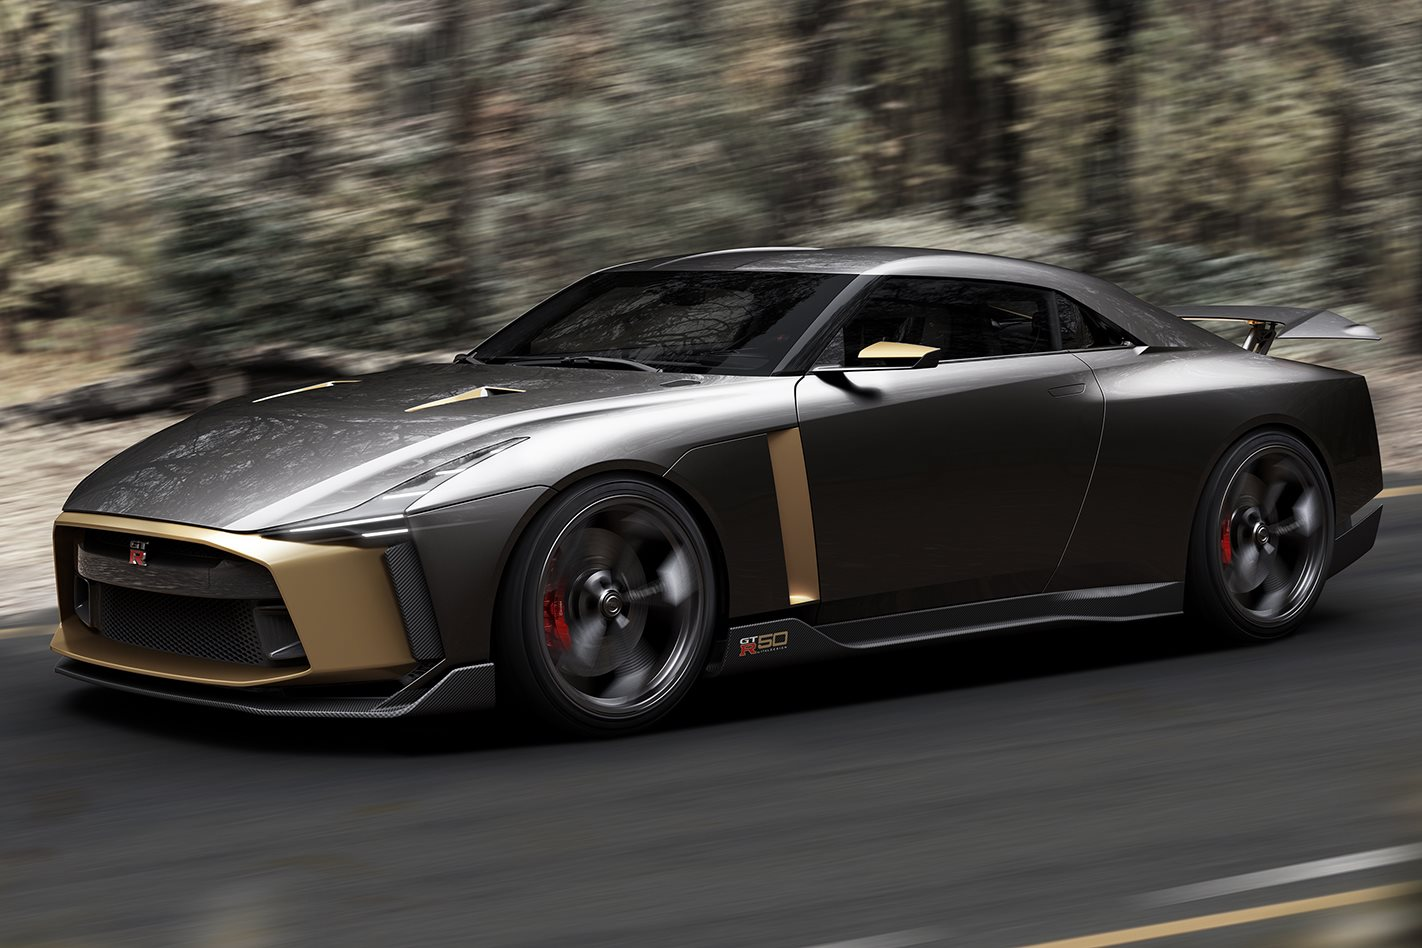 Nissans Next Gt R Will Be Fastest Super Sports Car In The World Nissan Gtr R35 Sketch